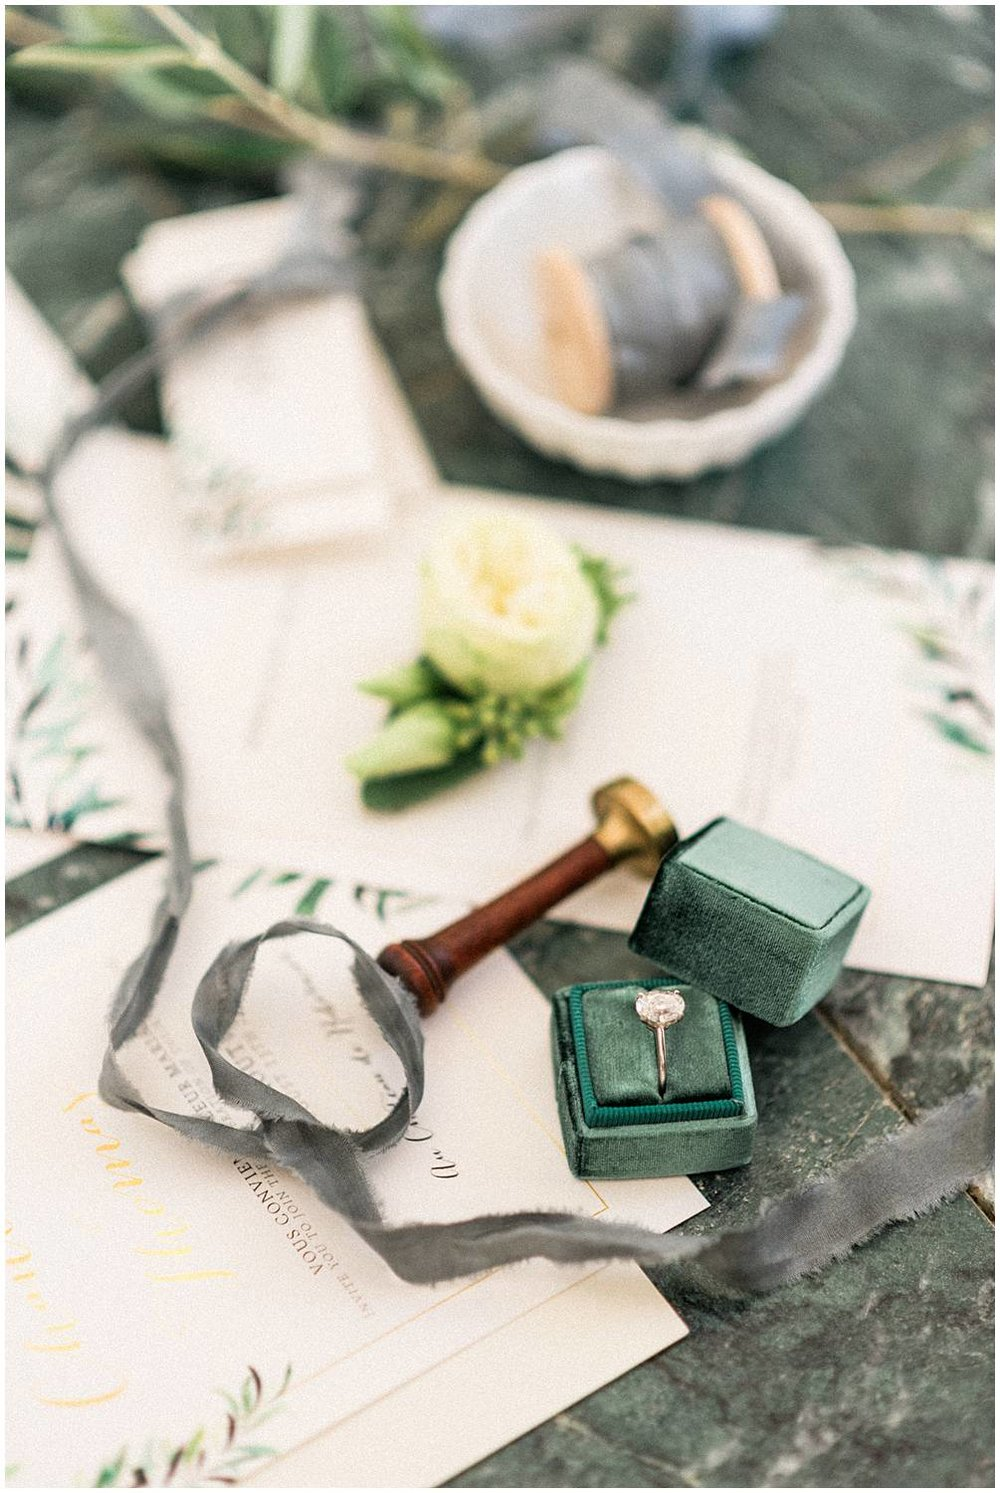 Stationery and details from wedding in provence, chateau de Robernier